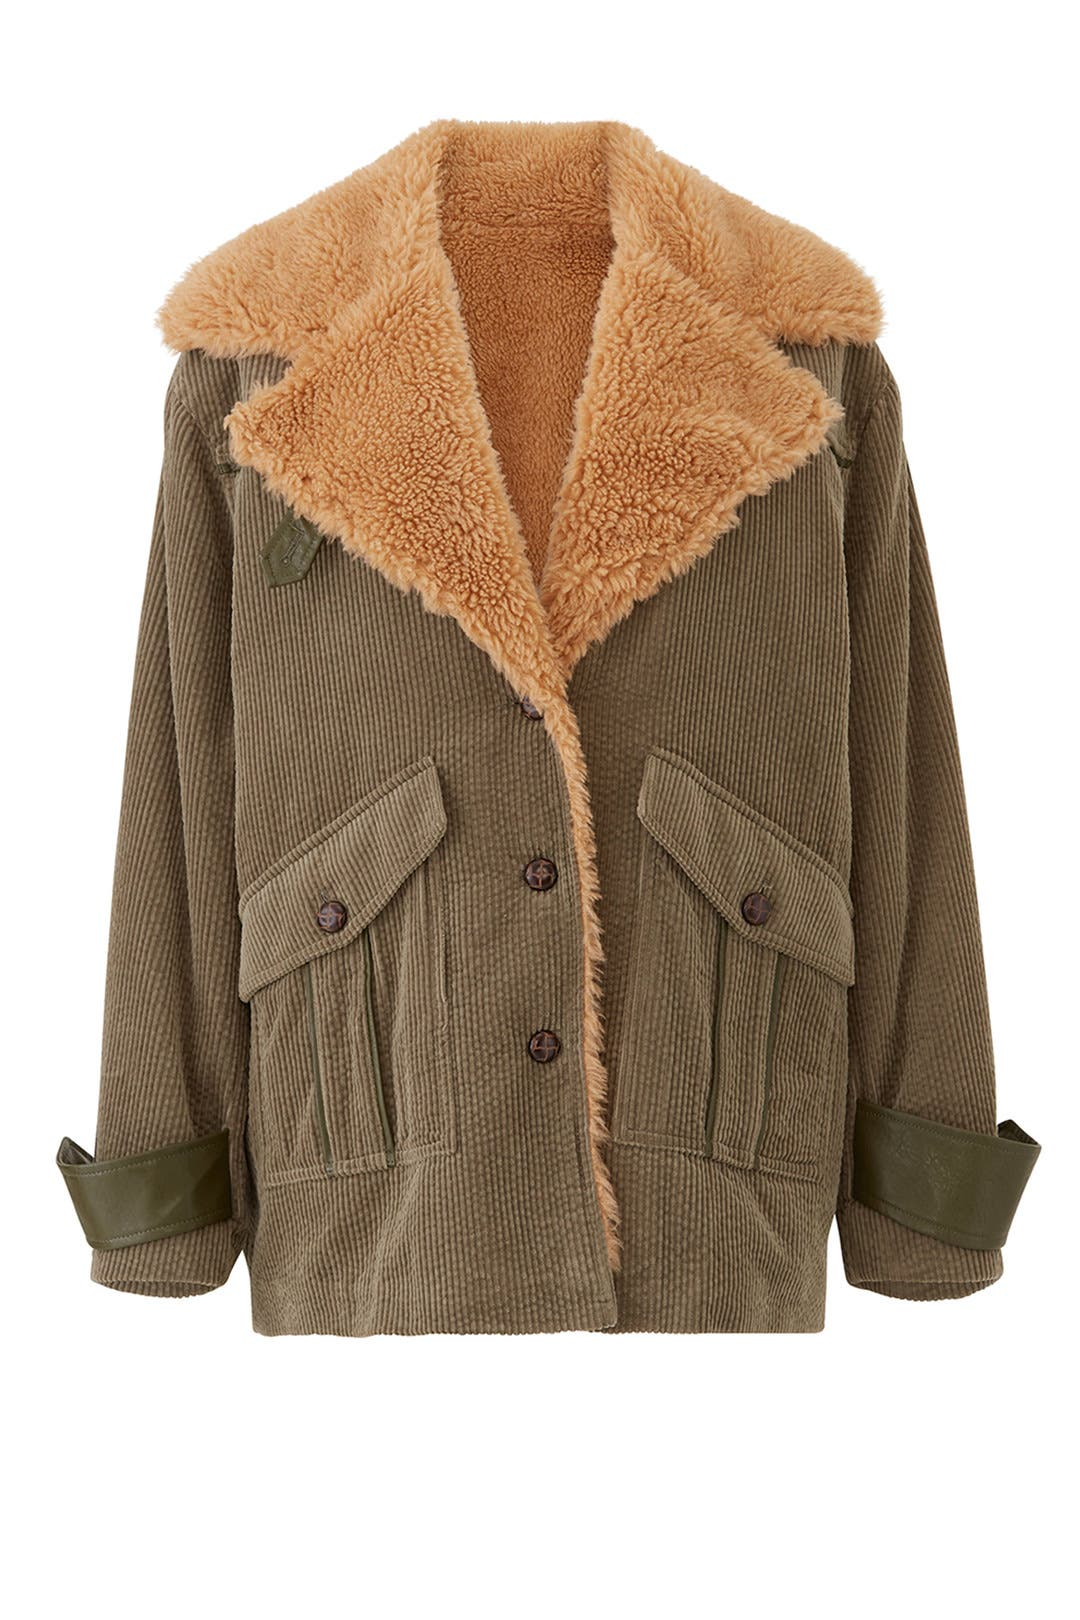 Faux Sherpa Corduroy Jacket By Avec Les Filles For 30 Rent The Runway